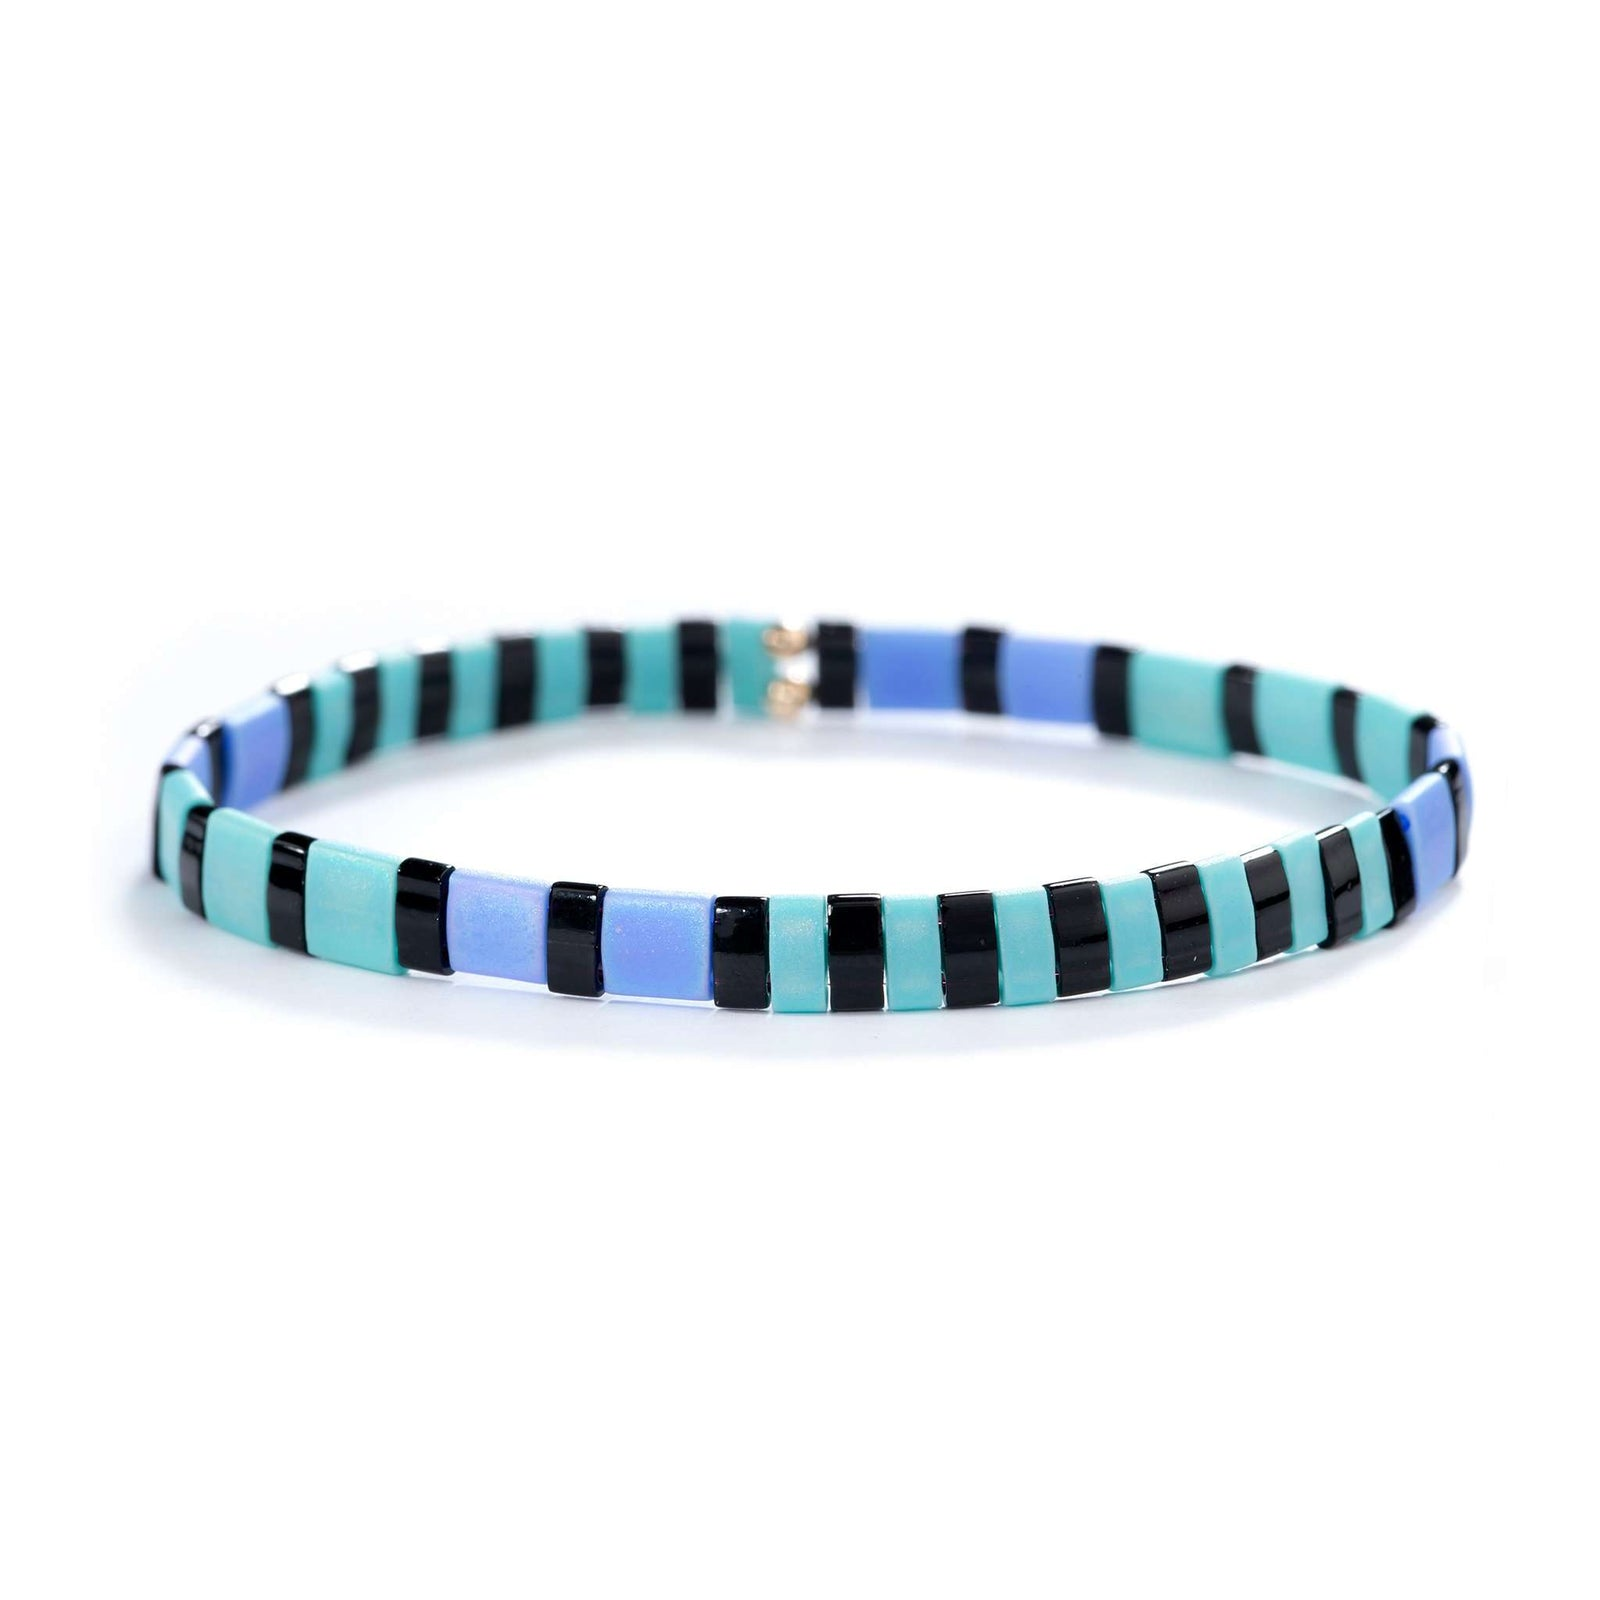 tilu-bracelet-shades-of-bluebracelets-jewelry